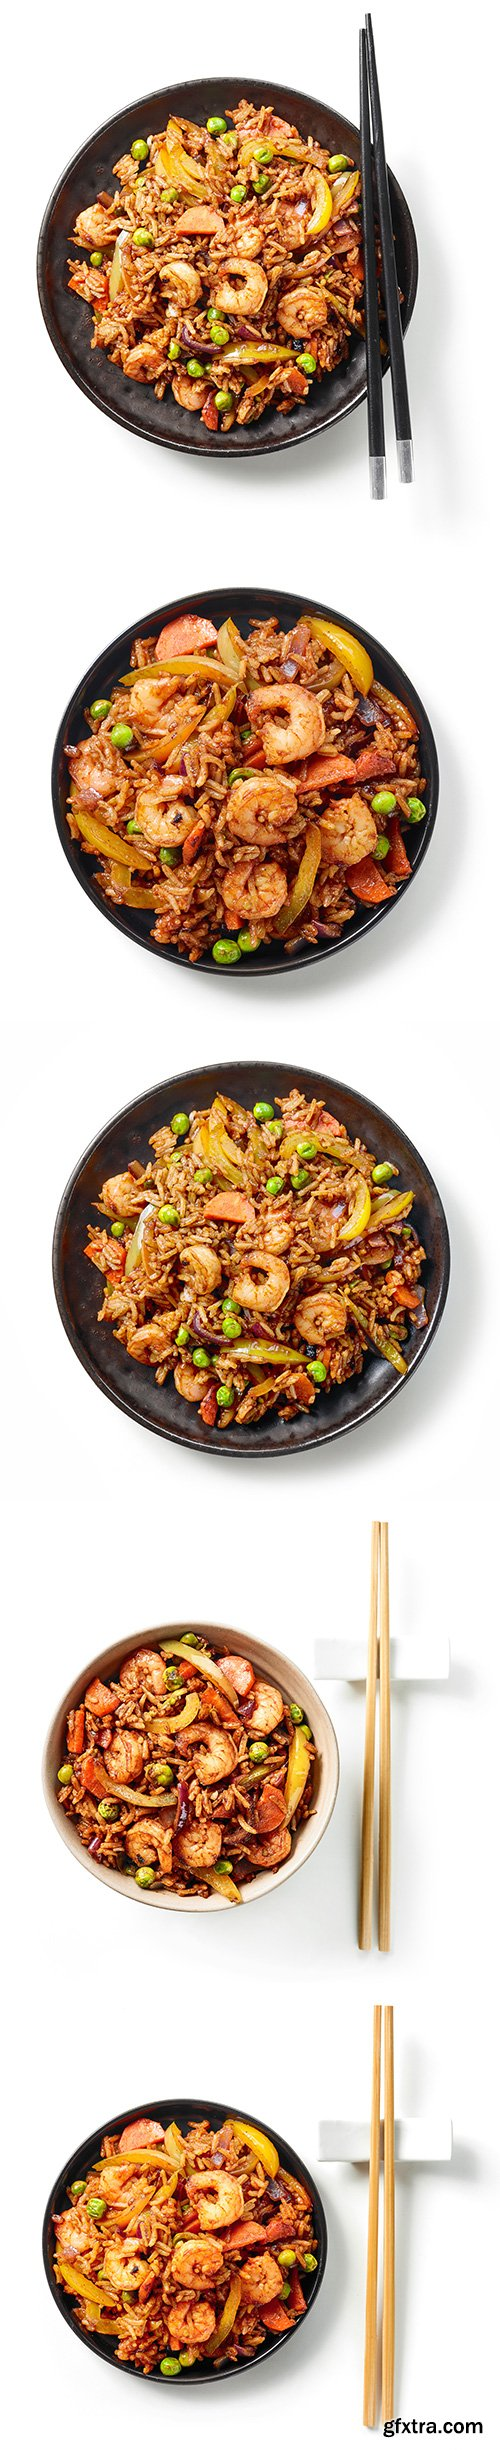 Plate Of Asian Food Isolated - 5xJPGs